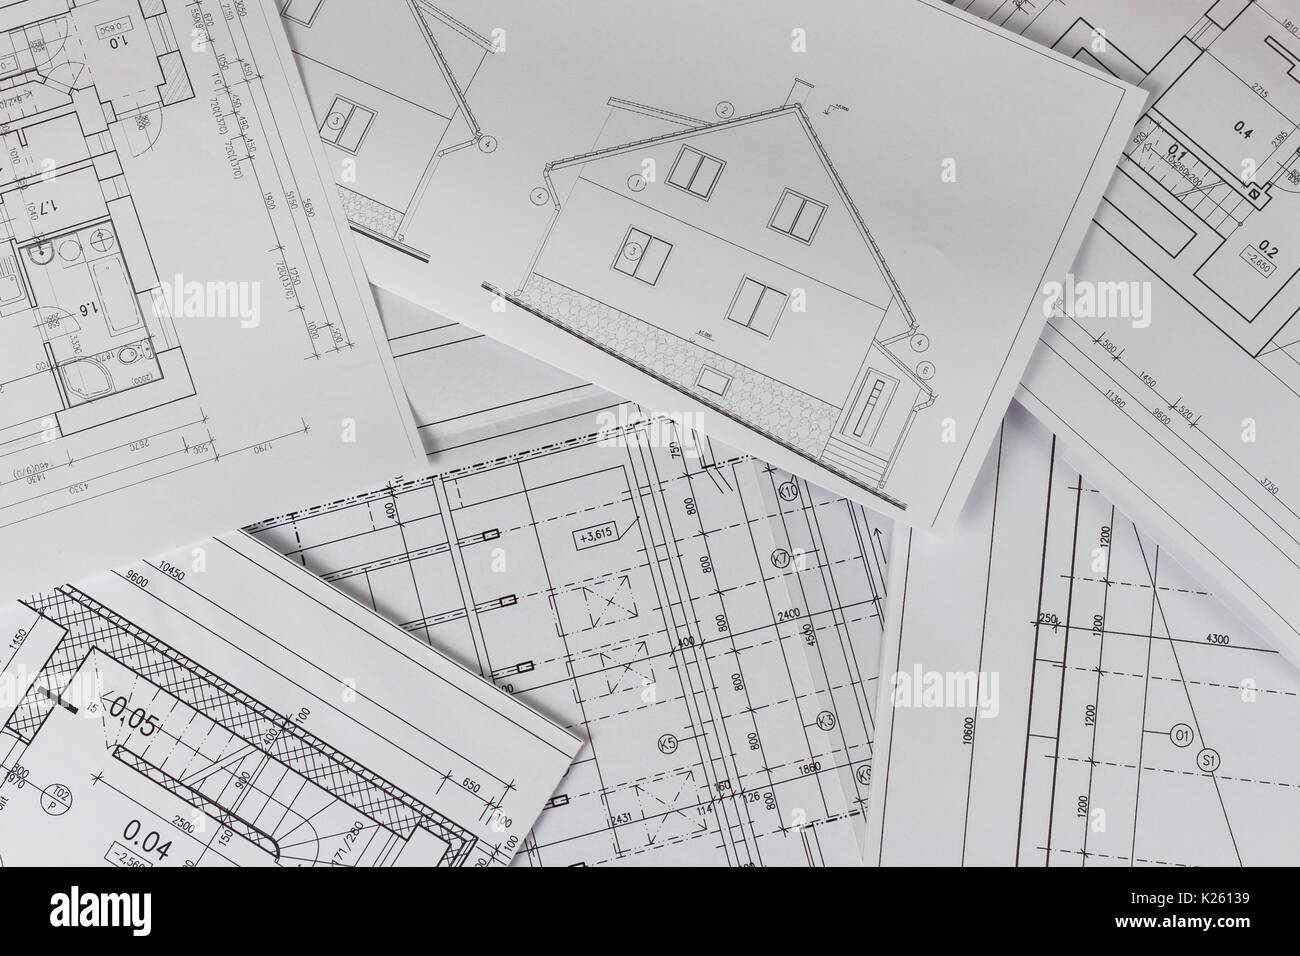 Plans Of Building Architectural Project Floor Plan Designed Building On The Drawing Engineering And Technical Drawing Part Of Architectural Projec Stock Photo Alamy